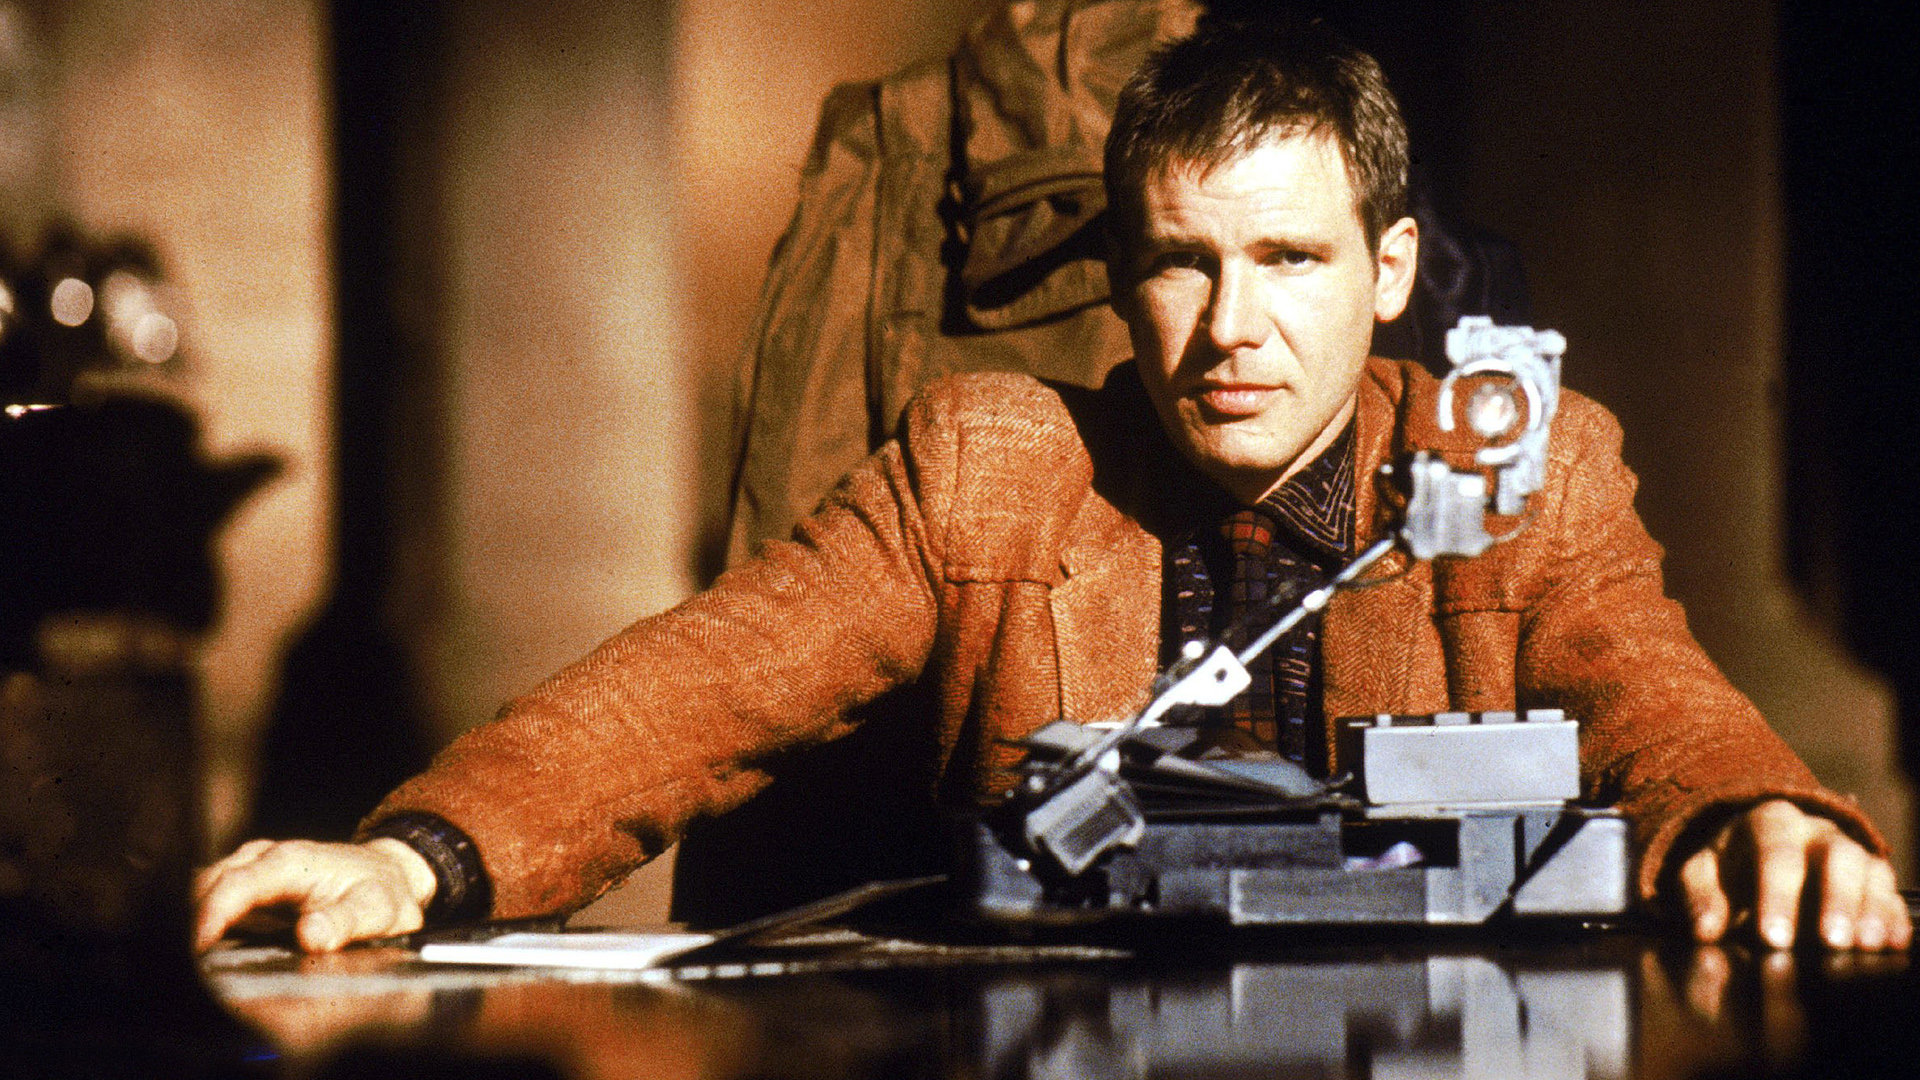 Harrison Ford sits at a desk in front of a machine